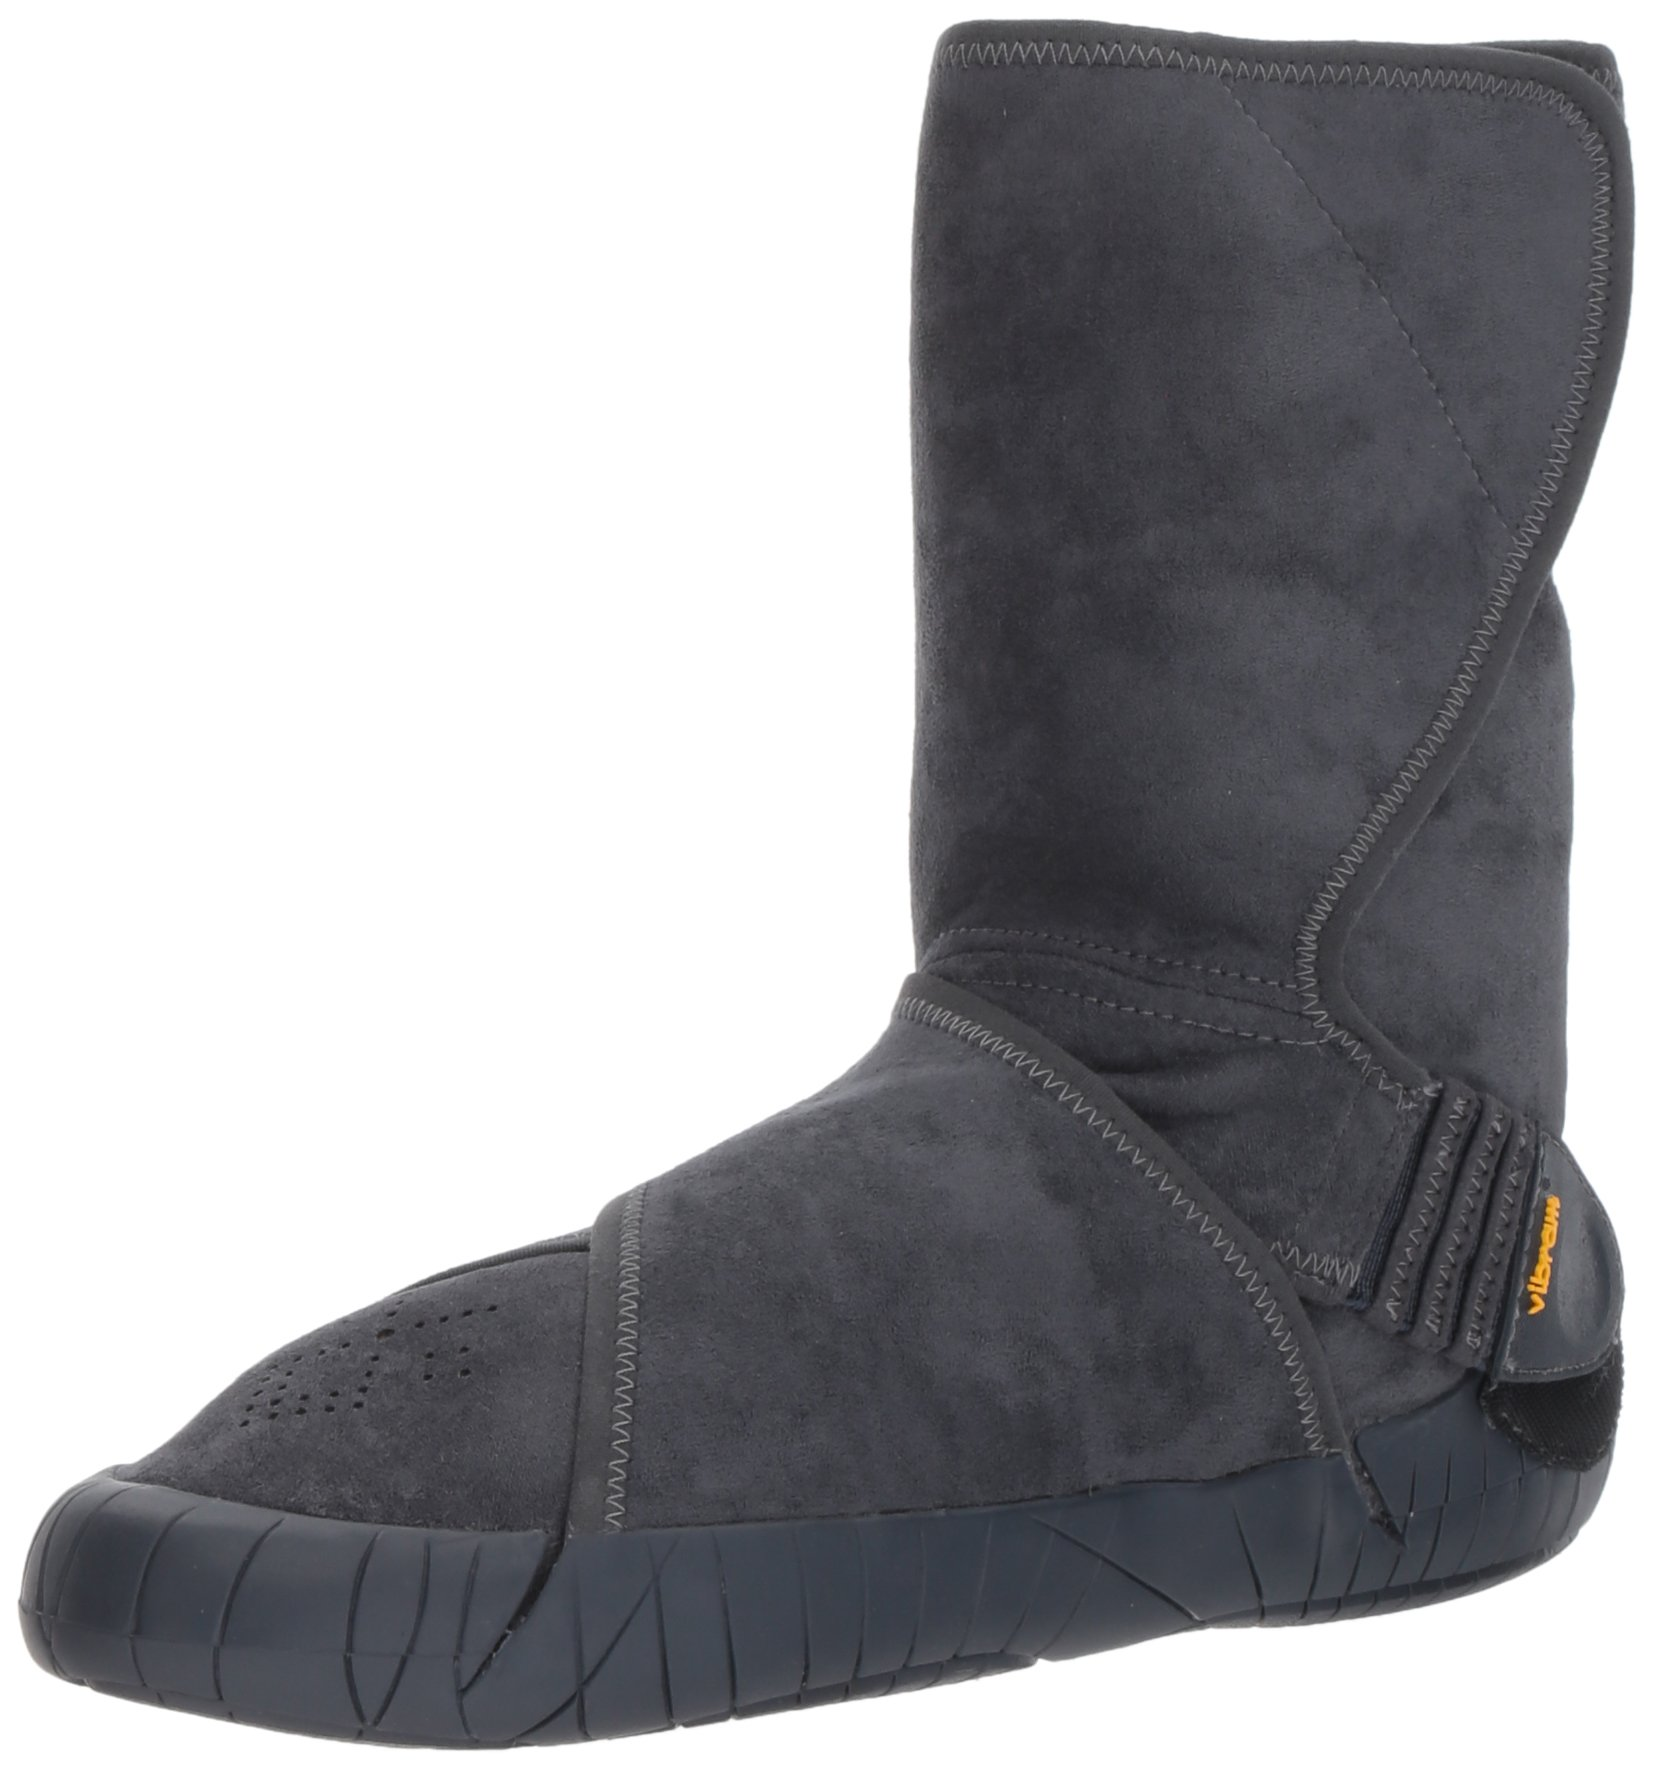 Vibram Furoshiki Mid Boot Eastern Traveler Sneaker, Grey, EU:42-43/UK Man:8-9/UK Woman:9-10.5/cm:26.5-27.5/US Man:9-10/US Woman:10-11.5